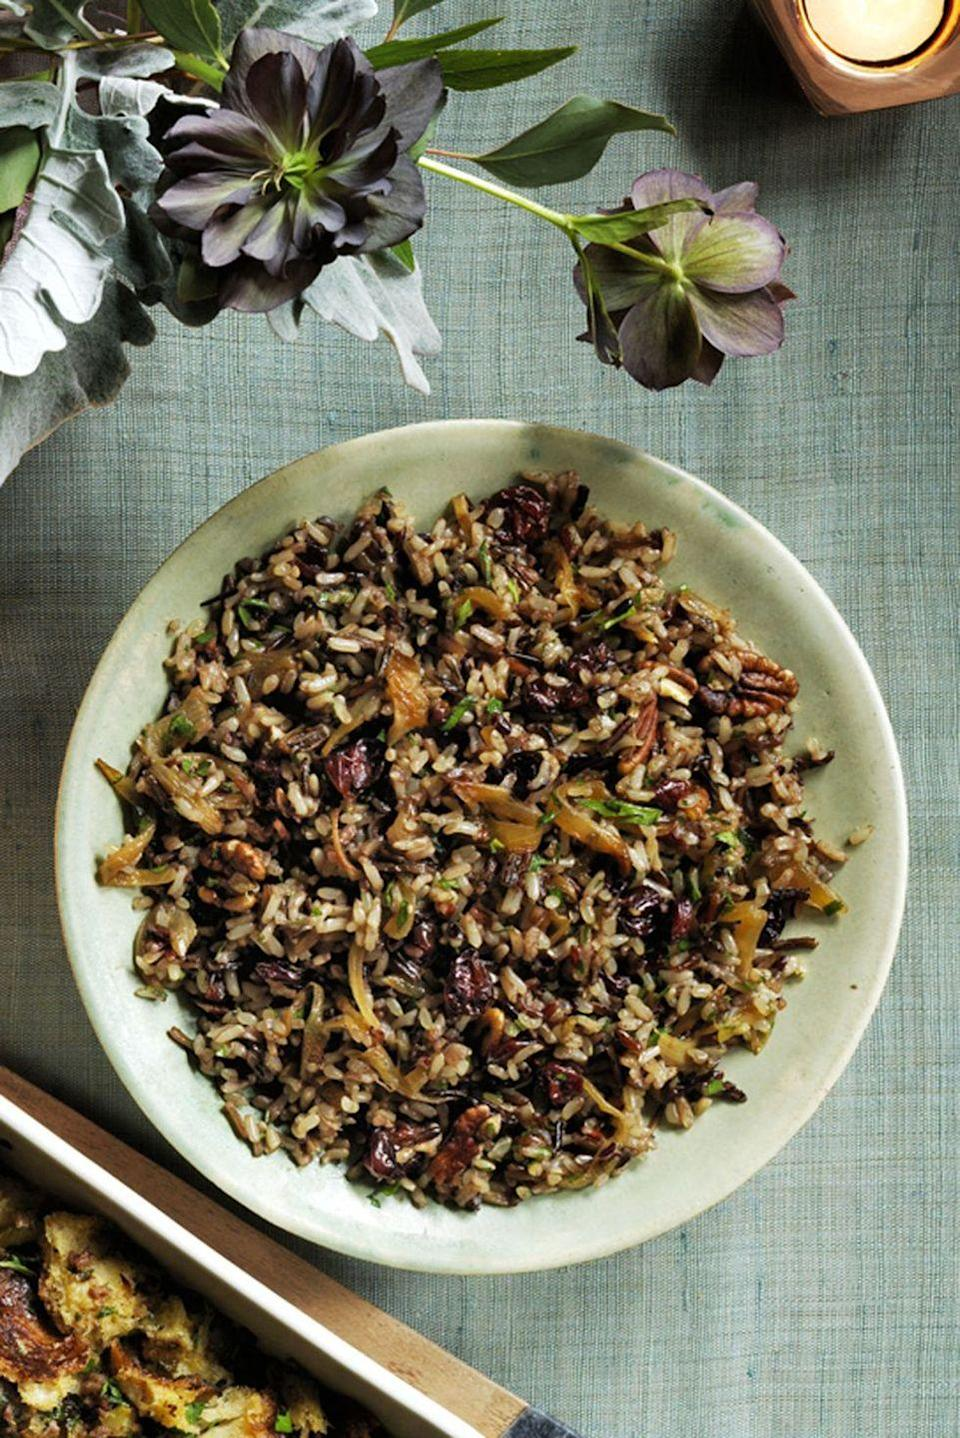 """<p>A hint of cinnamon adds unexpected sweetness to this flavorful side that can be made in advance and served at room temp!</p><p><em><a href=""""https://www.womansday.com/food-recipes/food-drinks/recipes/a60485/wild-rice-and-cherry-pilaf-recipe/"""" rel=""""nofollow noopener"""" target=""""_blank"""" data-ylk=""""slk:Get the recipe from Woman's Day »"""" class=""""link rapid-noclick-resp"""">Get the recipe from Woman's Day »</a></em></p>"""